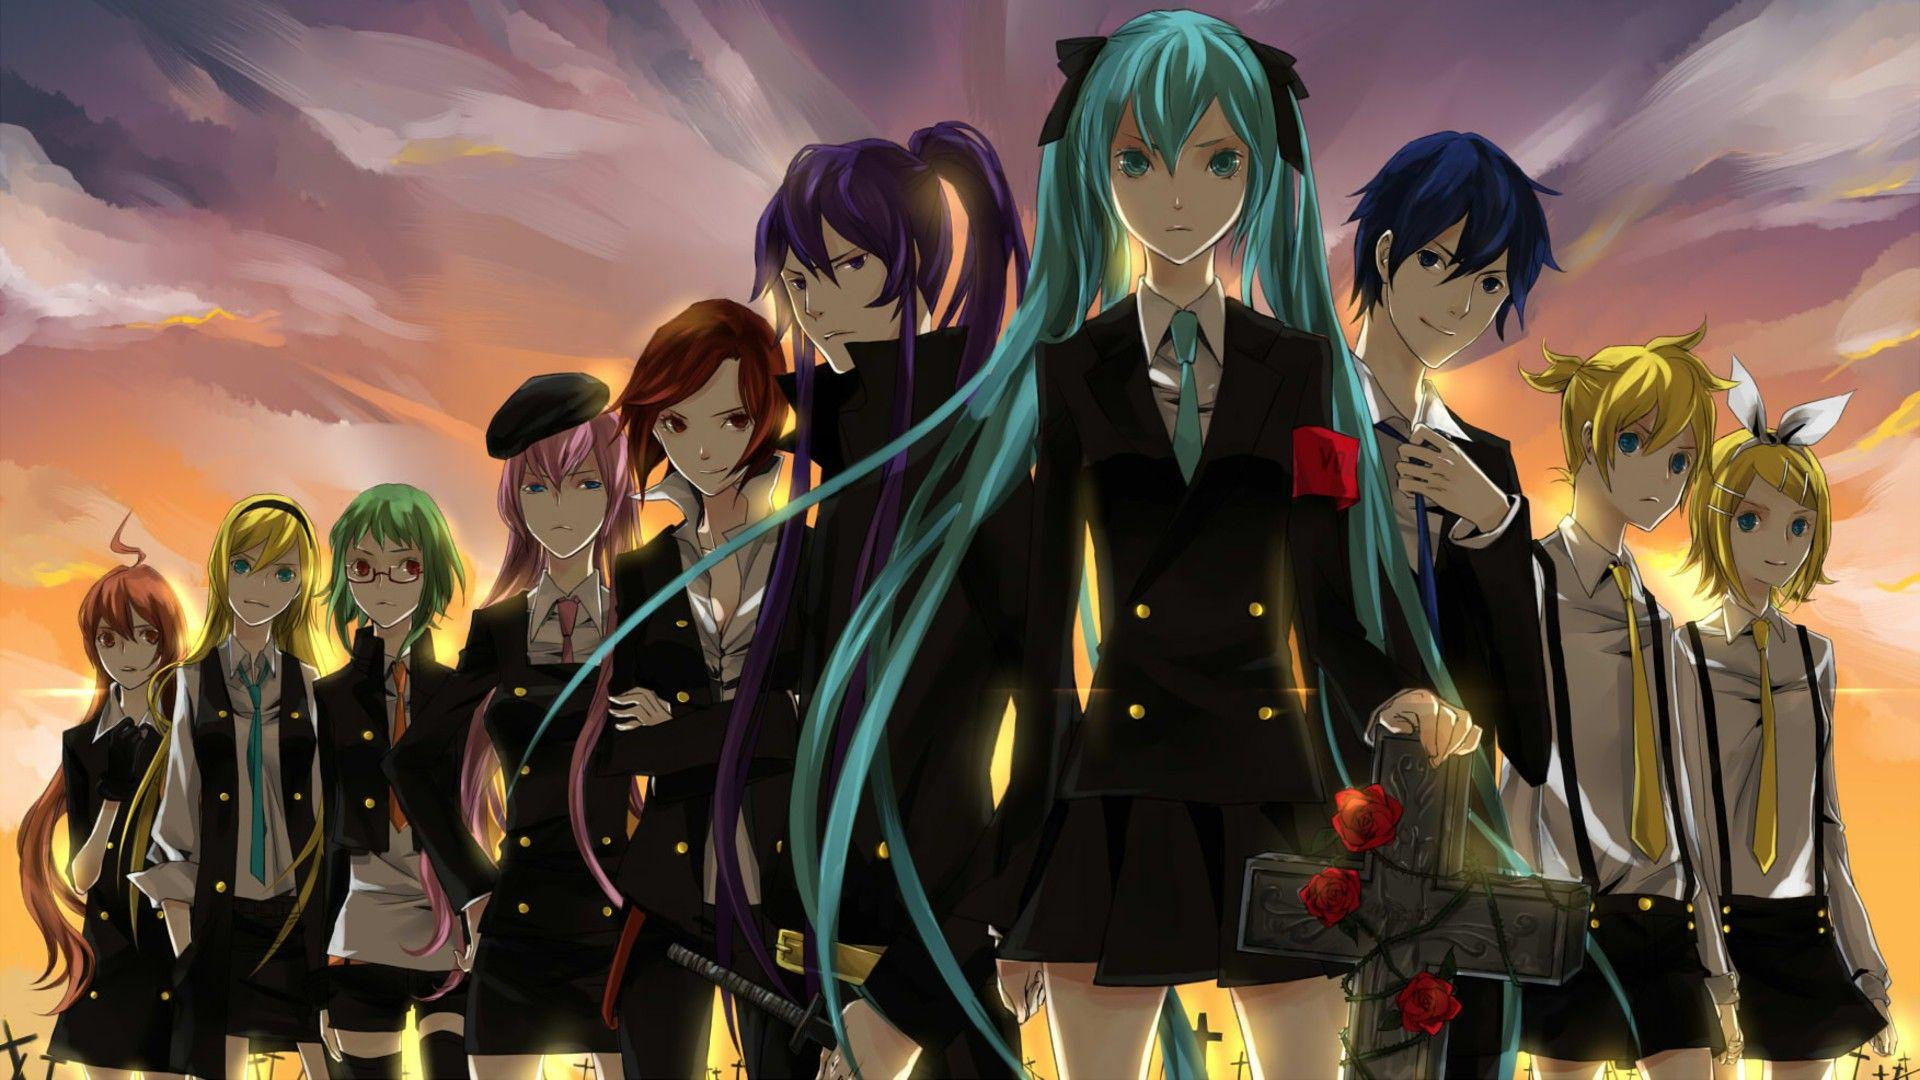 Vocaloid Full HD Wallpaper and Background | 1920x1080 | ID:839125